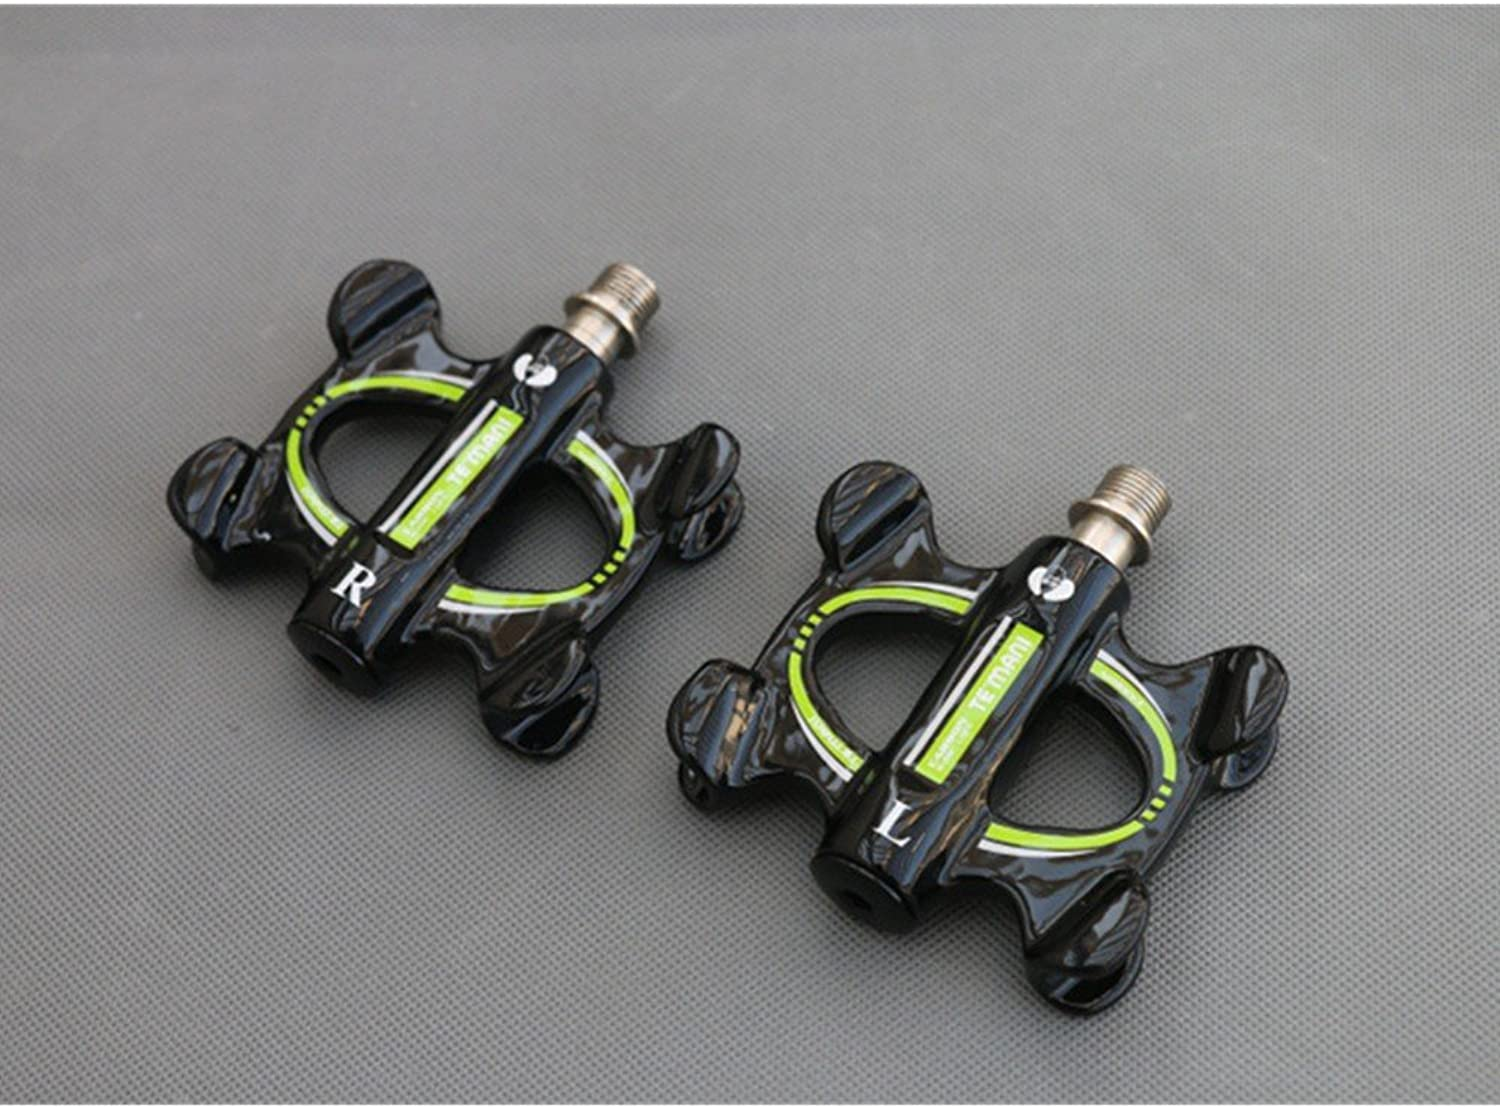 Bicycle pedal,Aluminum pedal,Bearing pedal,Easy to install pedal,Large pedal,Lightweight pedal,bmx pedal,fixed gear bicycle,CNC bearing bicycle pedalsBicycle accessories all carbon fiber foot pedal for mountain highway ultra light bearing bicycle accessor